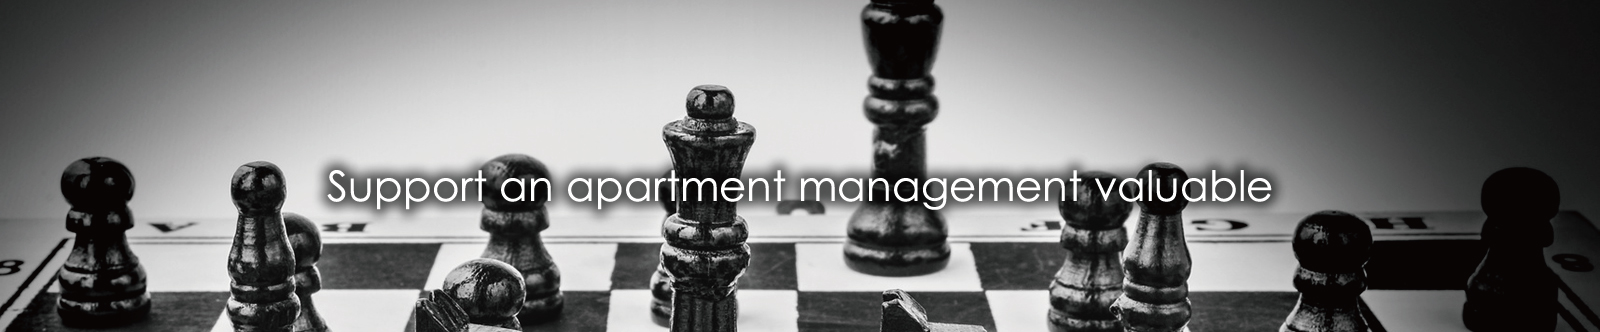 Support an apartment management valuable